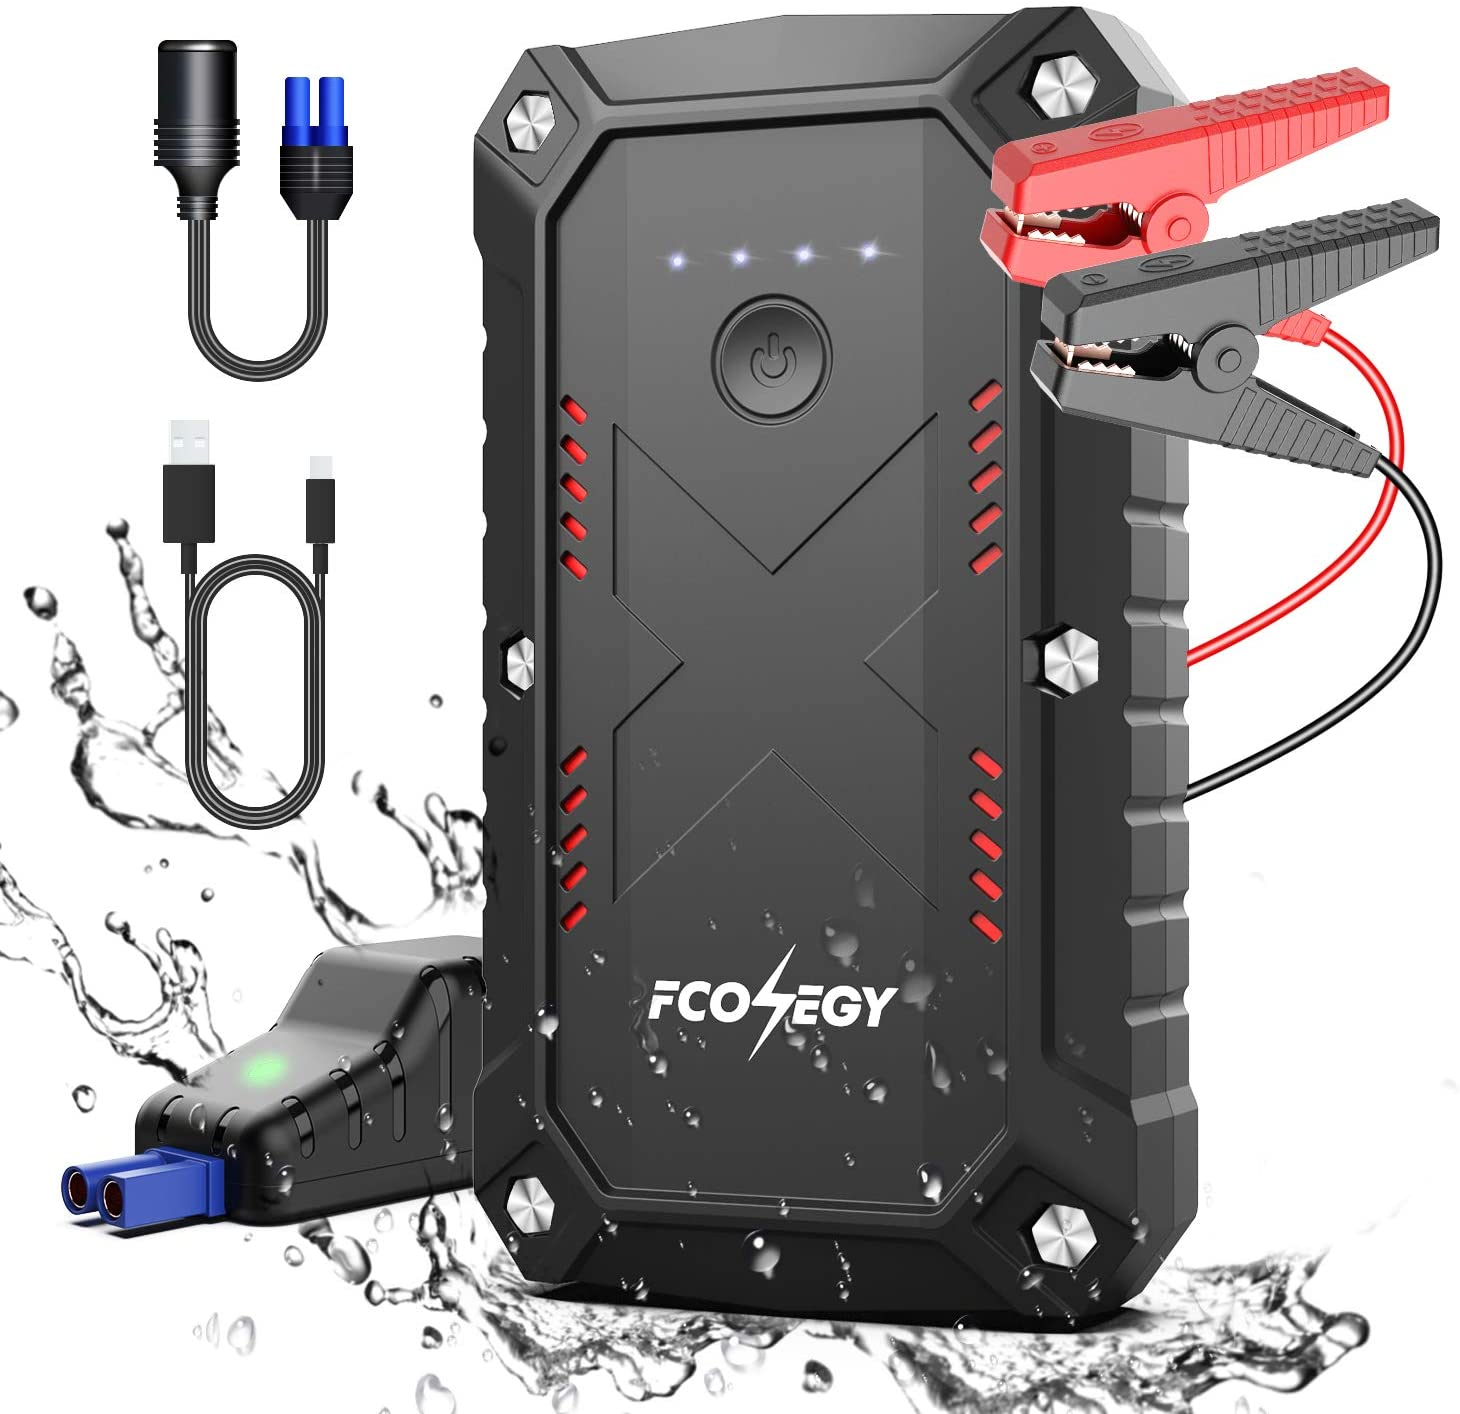 Car Jump Starter, FCONEGY 2000A Peak 23800mAh Portable Battery Starter for Car with Smart Safety Jumper Clamps Portable Power 12V Car Booster(up to 8.0L Gas & 7.0L Diesel car) Dual USB Quick Charge